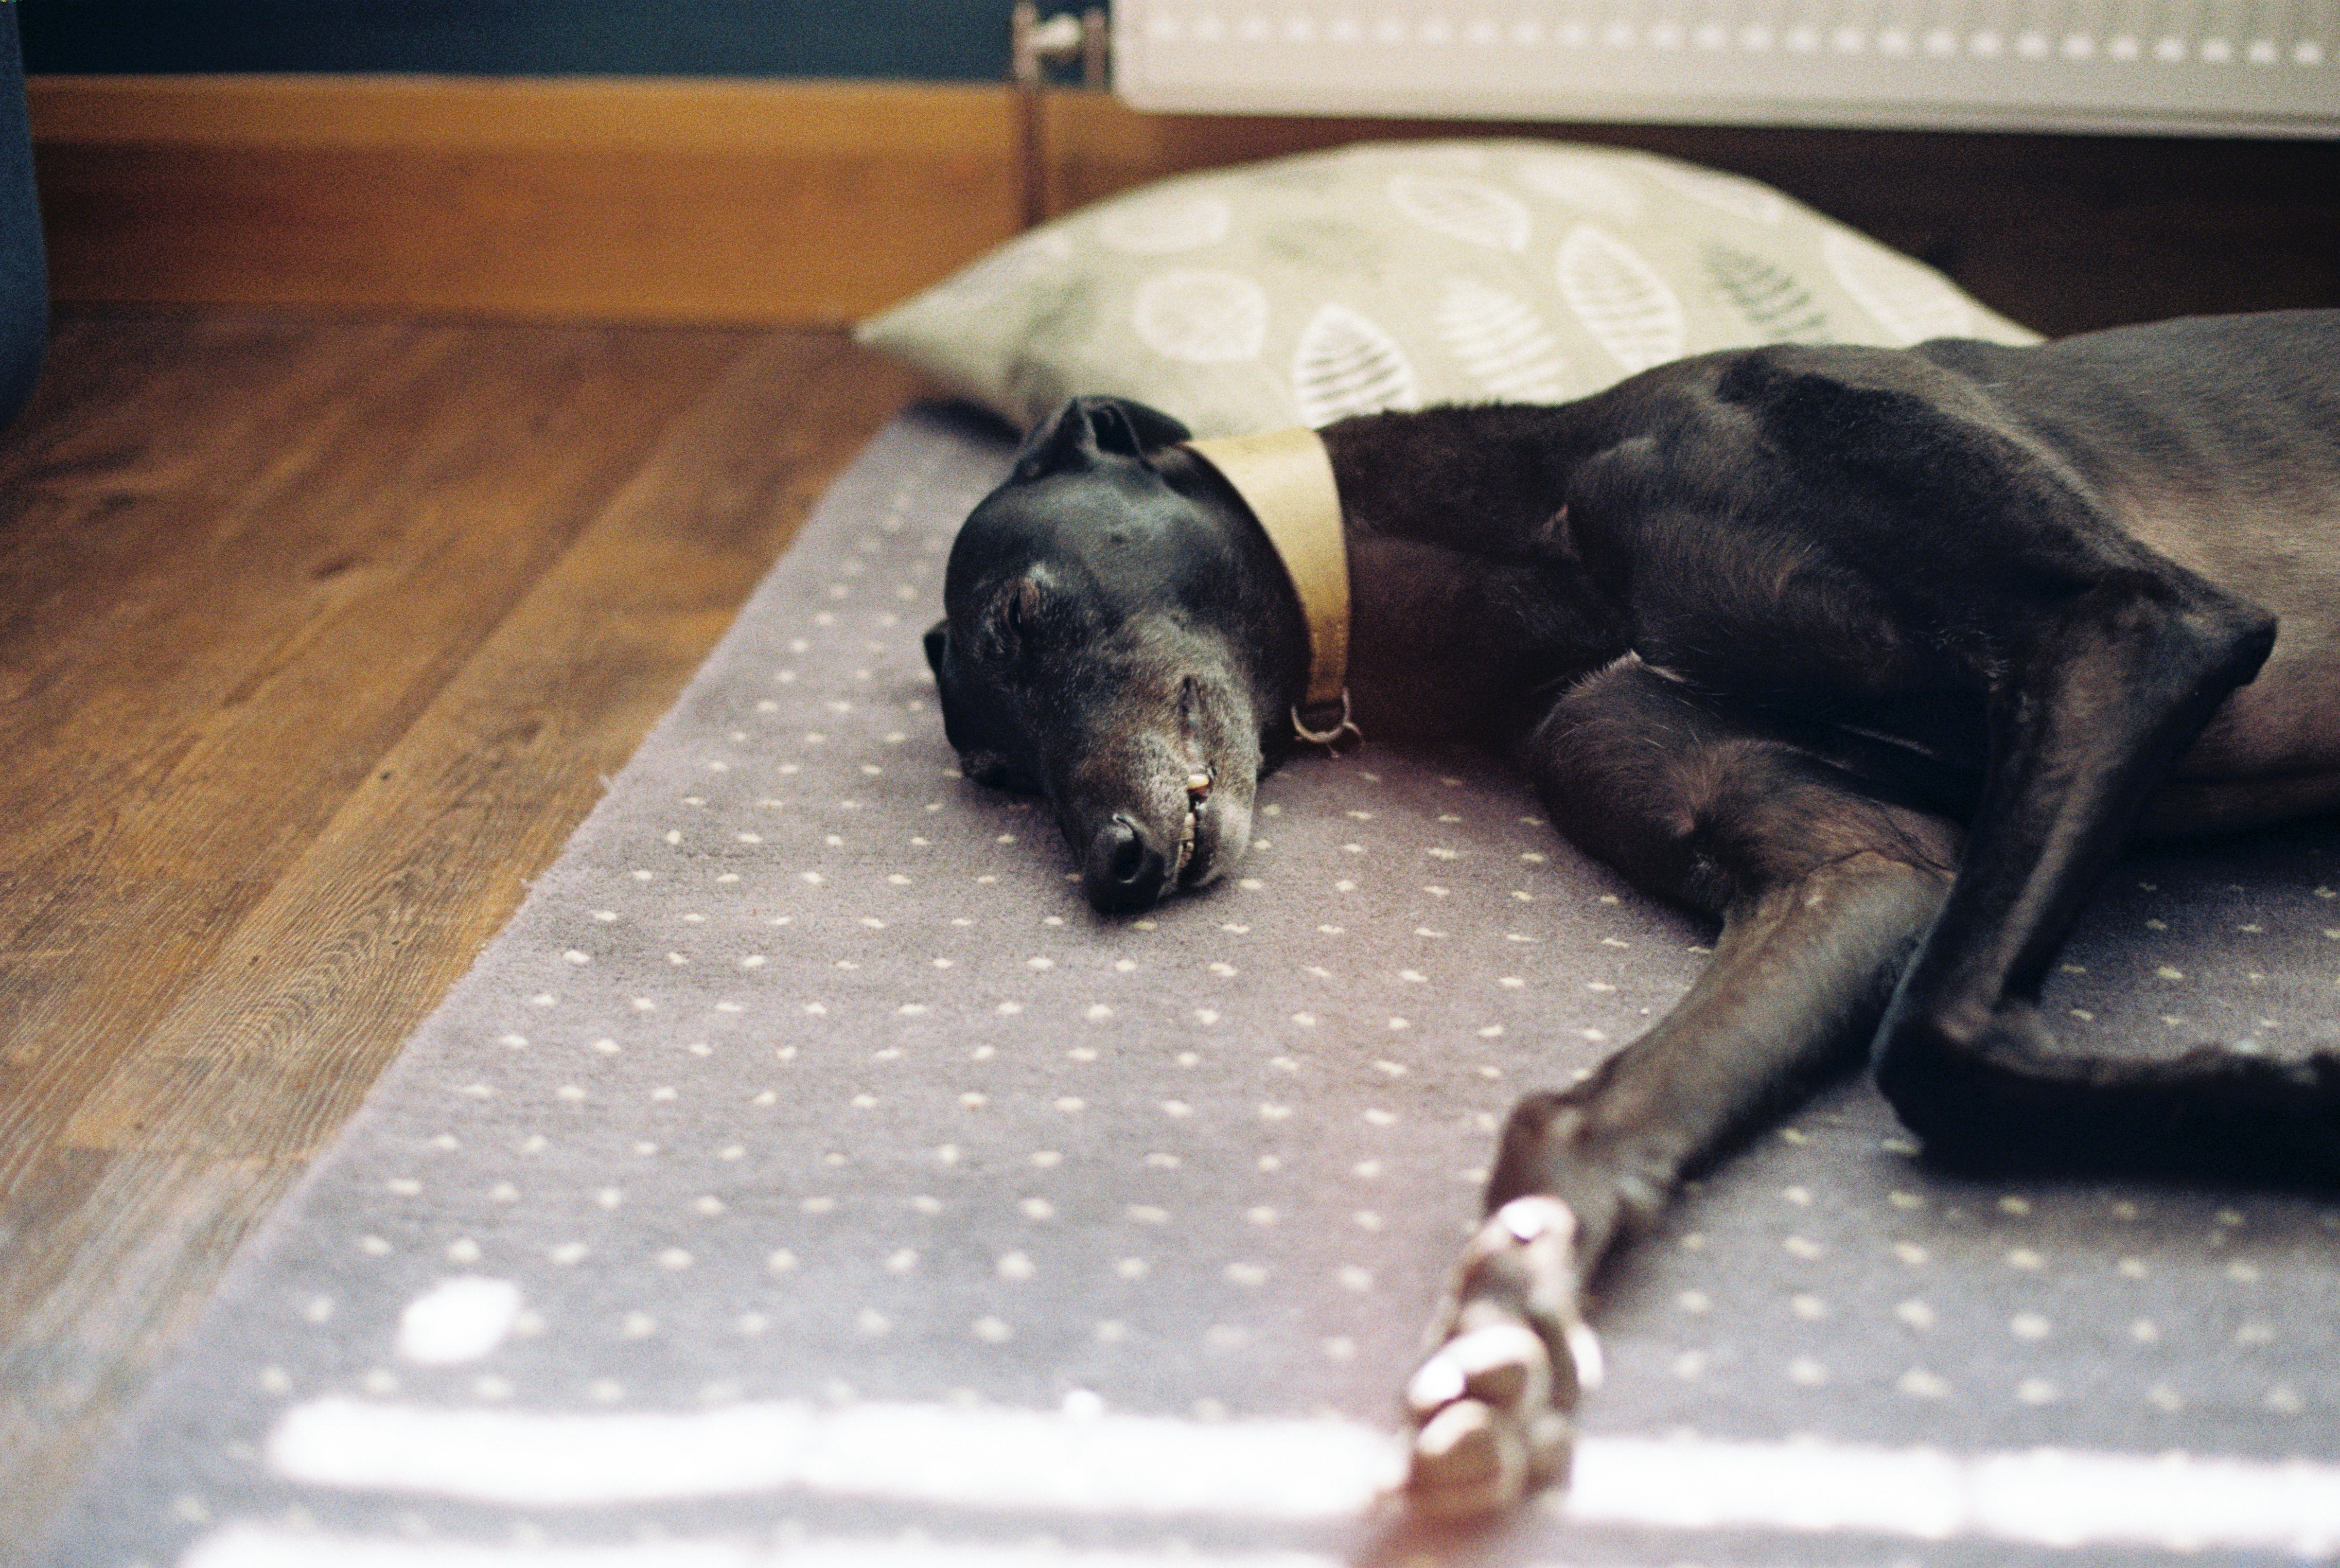 6 IKEA Hacks Every Dog Owner Should Know About